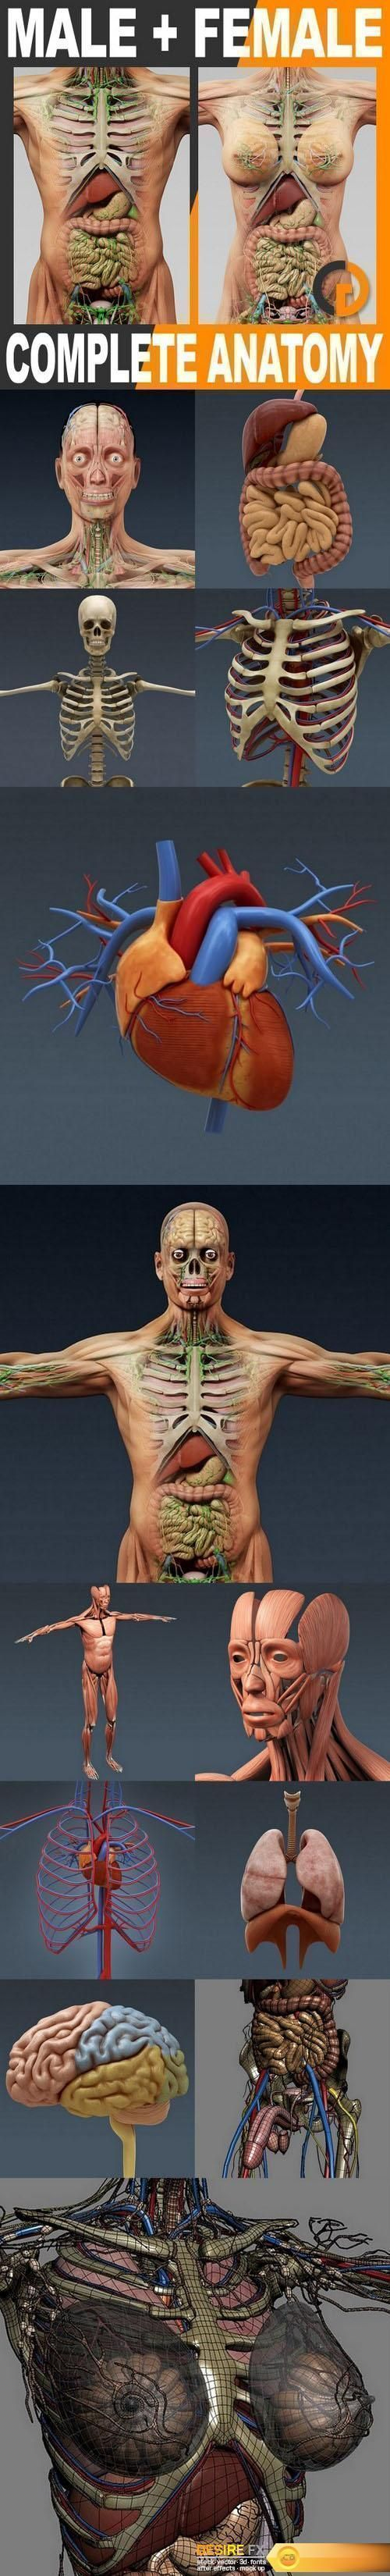 Human Male And Female Complete Anatomy Body Muscles Skeleton